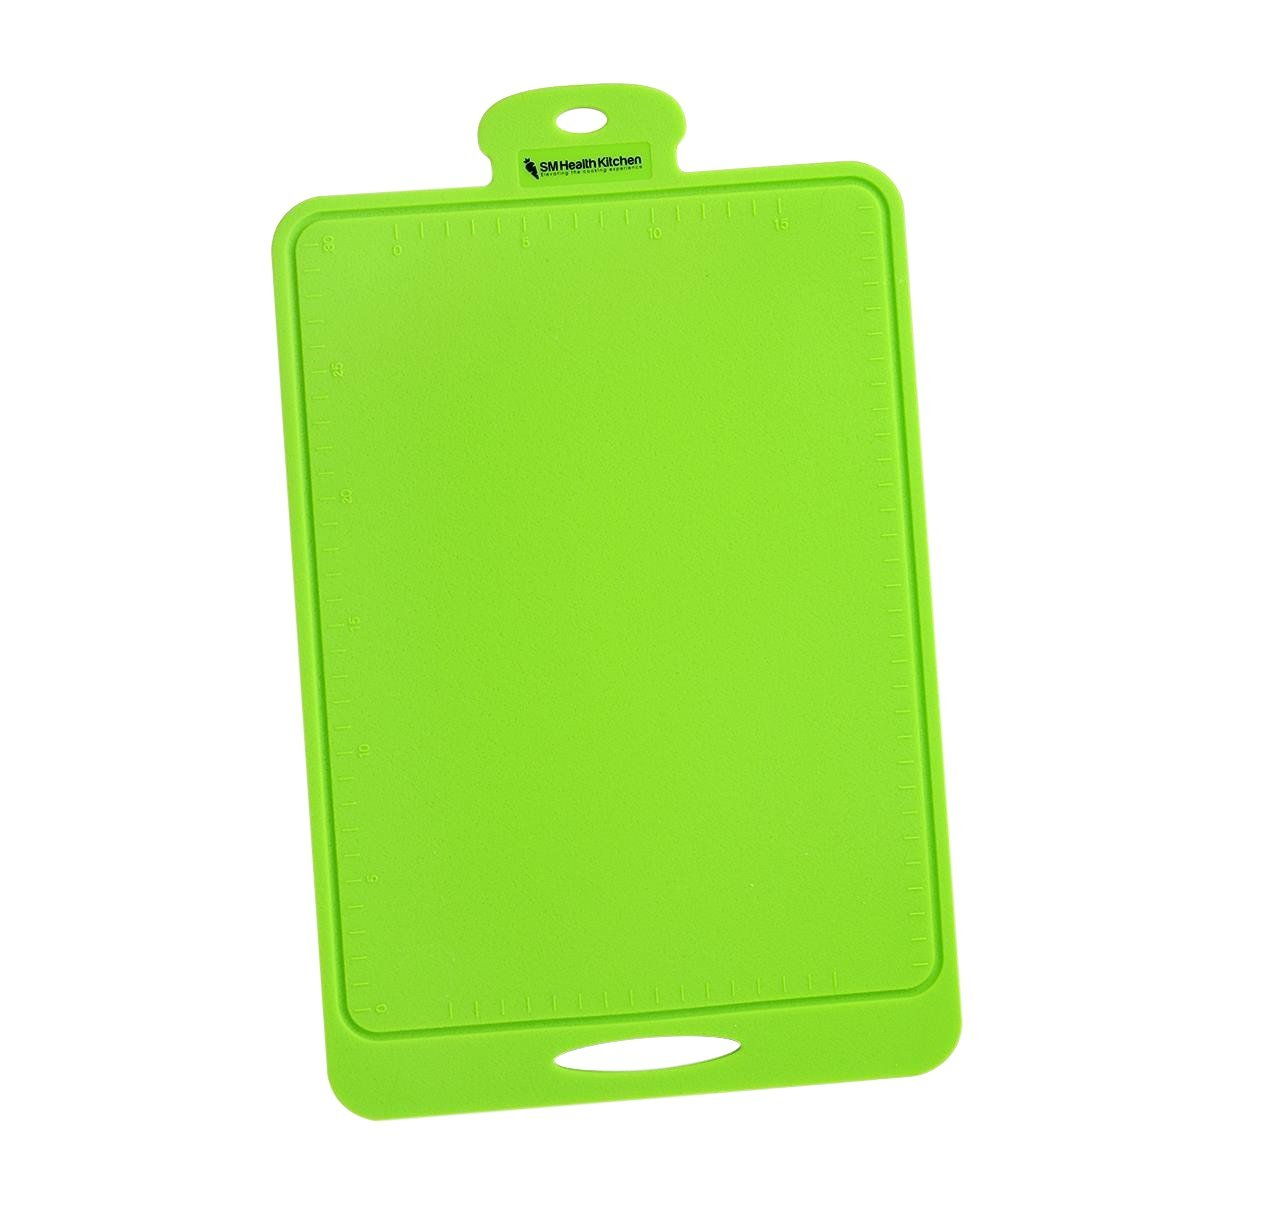 Silicone Cutting Board Flexible Durable Dishwasher Circuit Boardflexible Boardlow Cost Product Safe Nonslip For Chopping Mat Green Sm Health Kitchen Dining